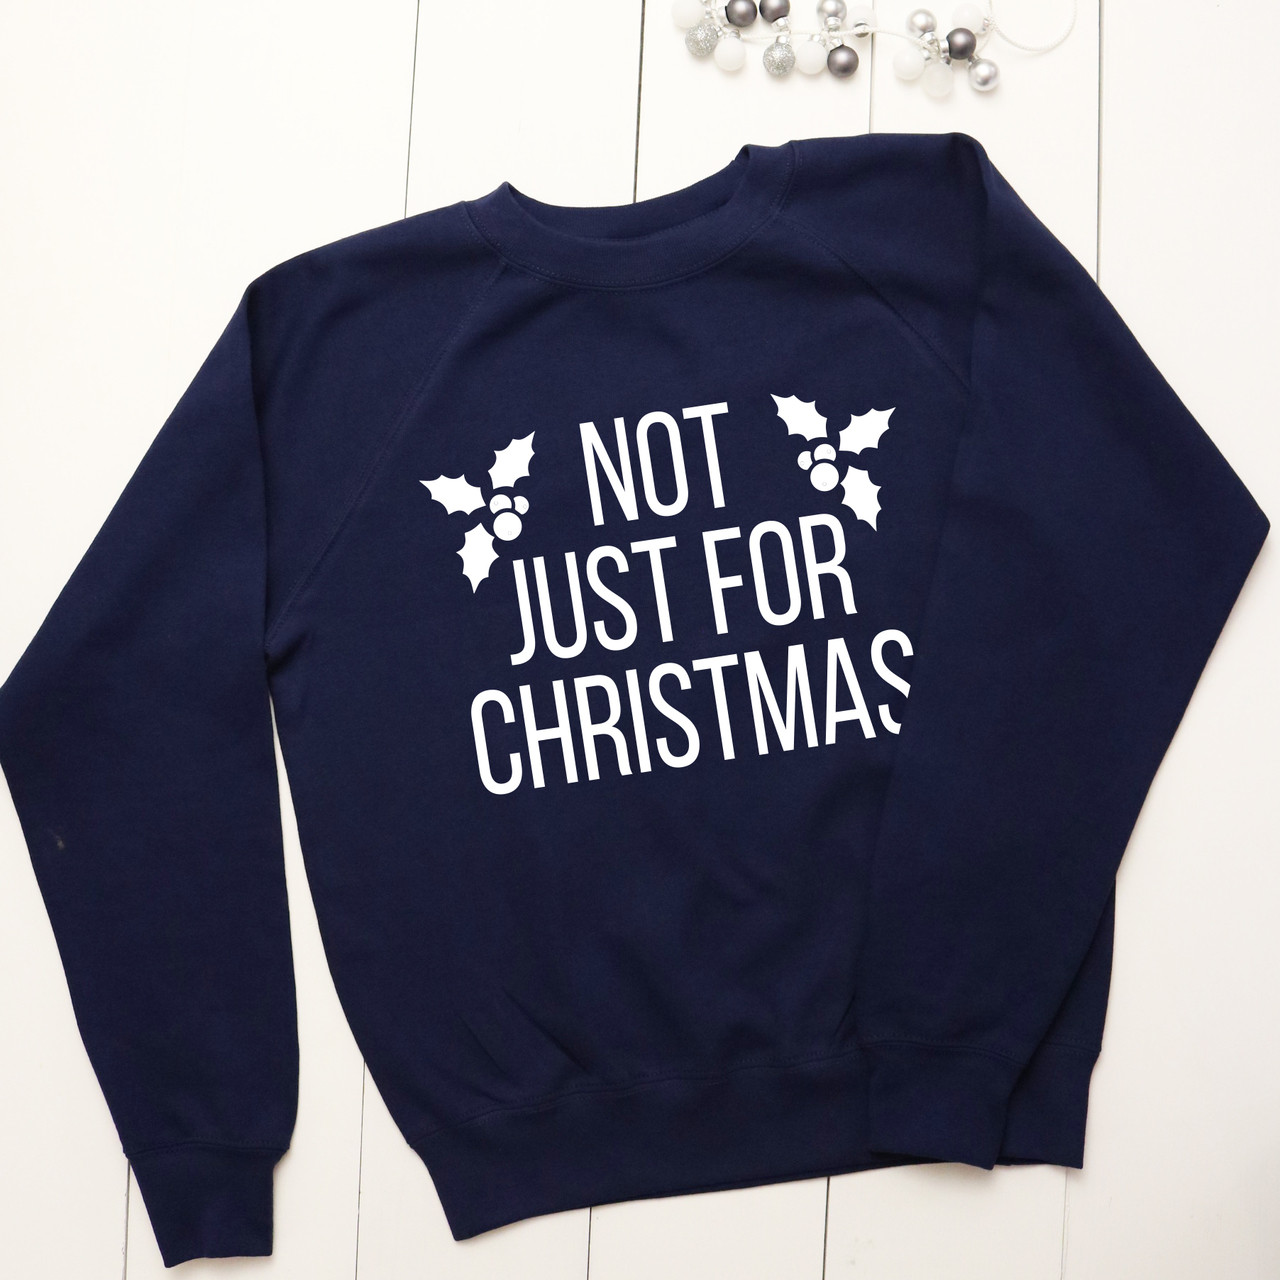 6fc443d08 Personalised 'Not just for Christmas' sweatshirt - Unisex - A Piece Of